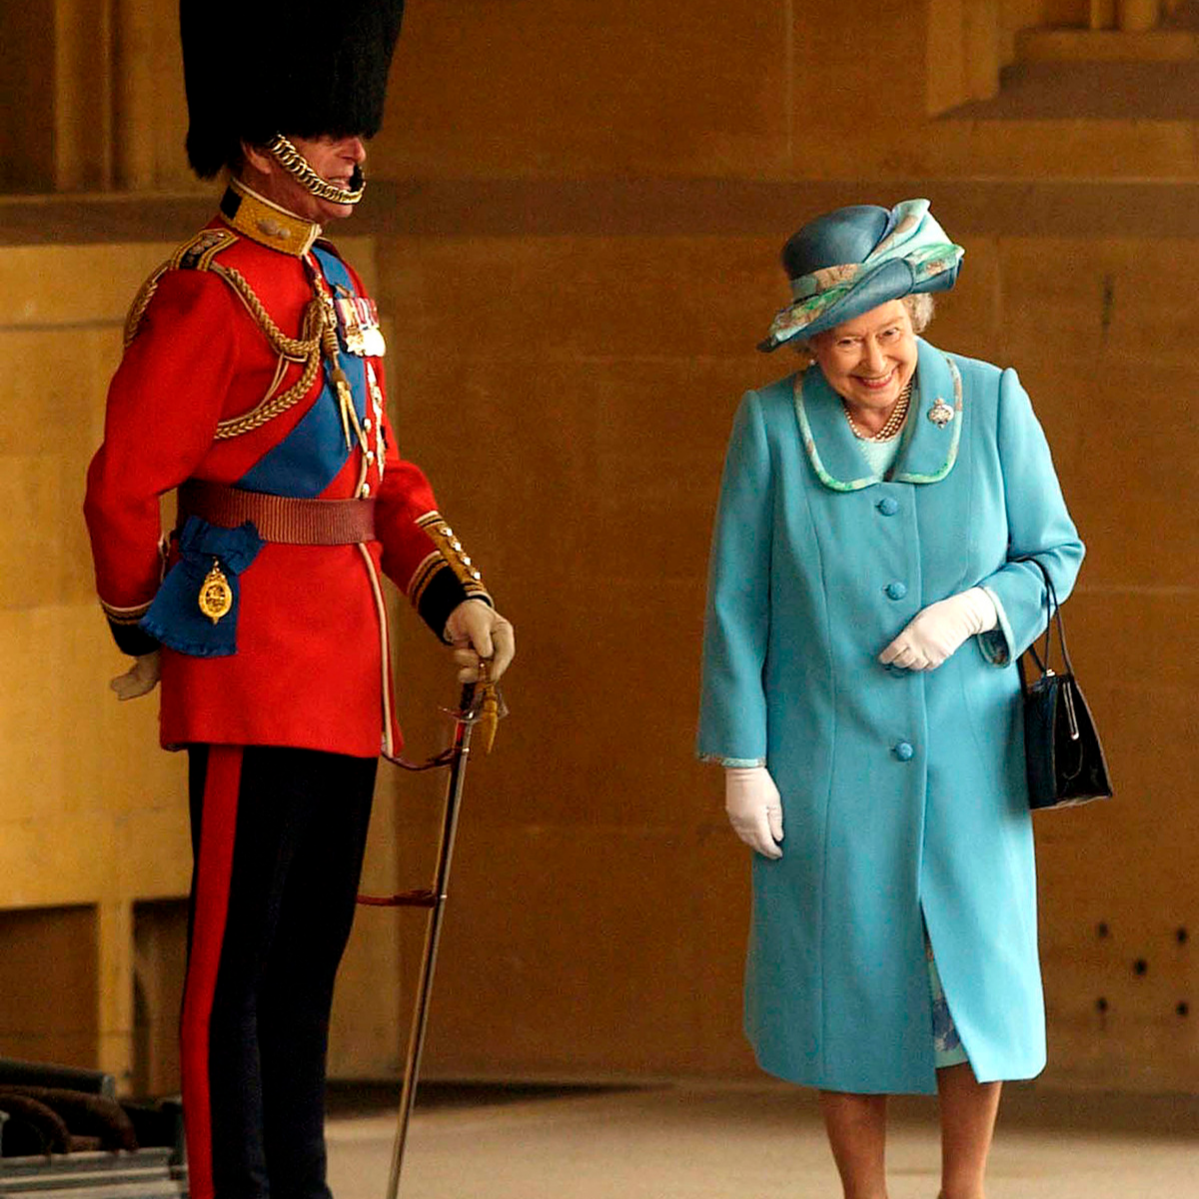 Queen Elizabeth II gets a fit of the giggles as she walks past her husband Prince Philip, the Duke of Edinburgh who is standing to attention in his uniform and bearskin hat at Buckingham Palace in 2005.